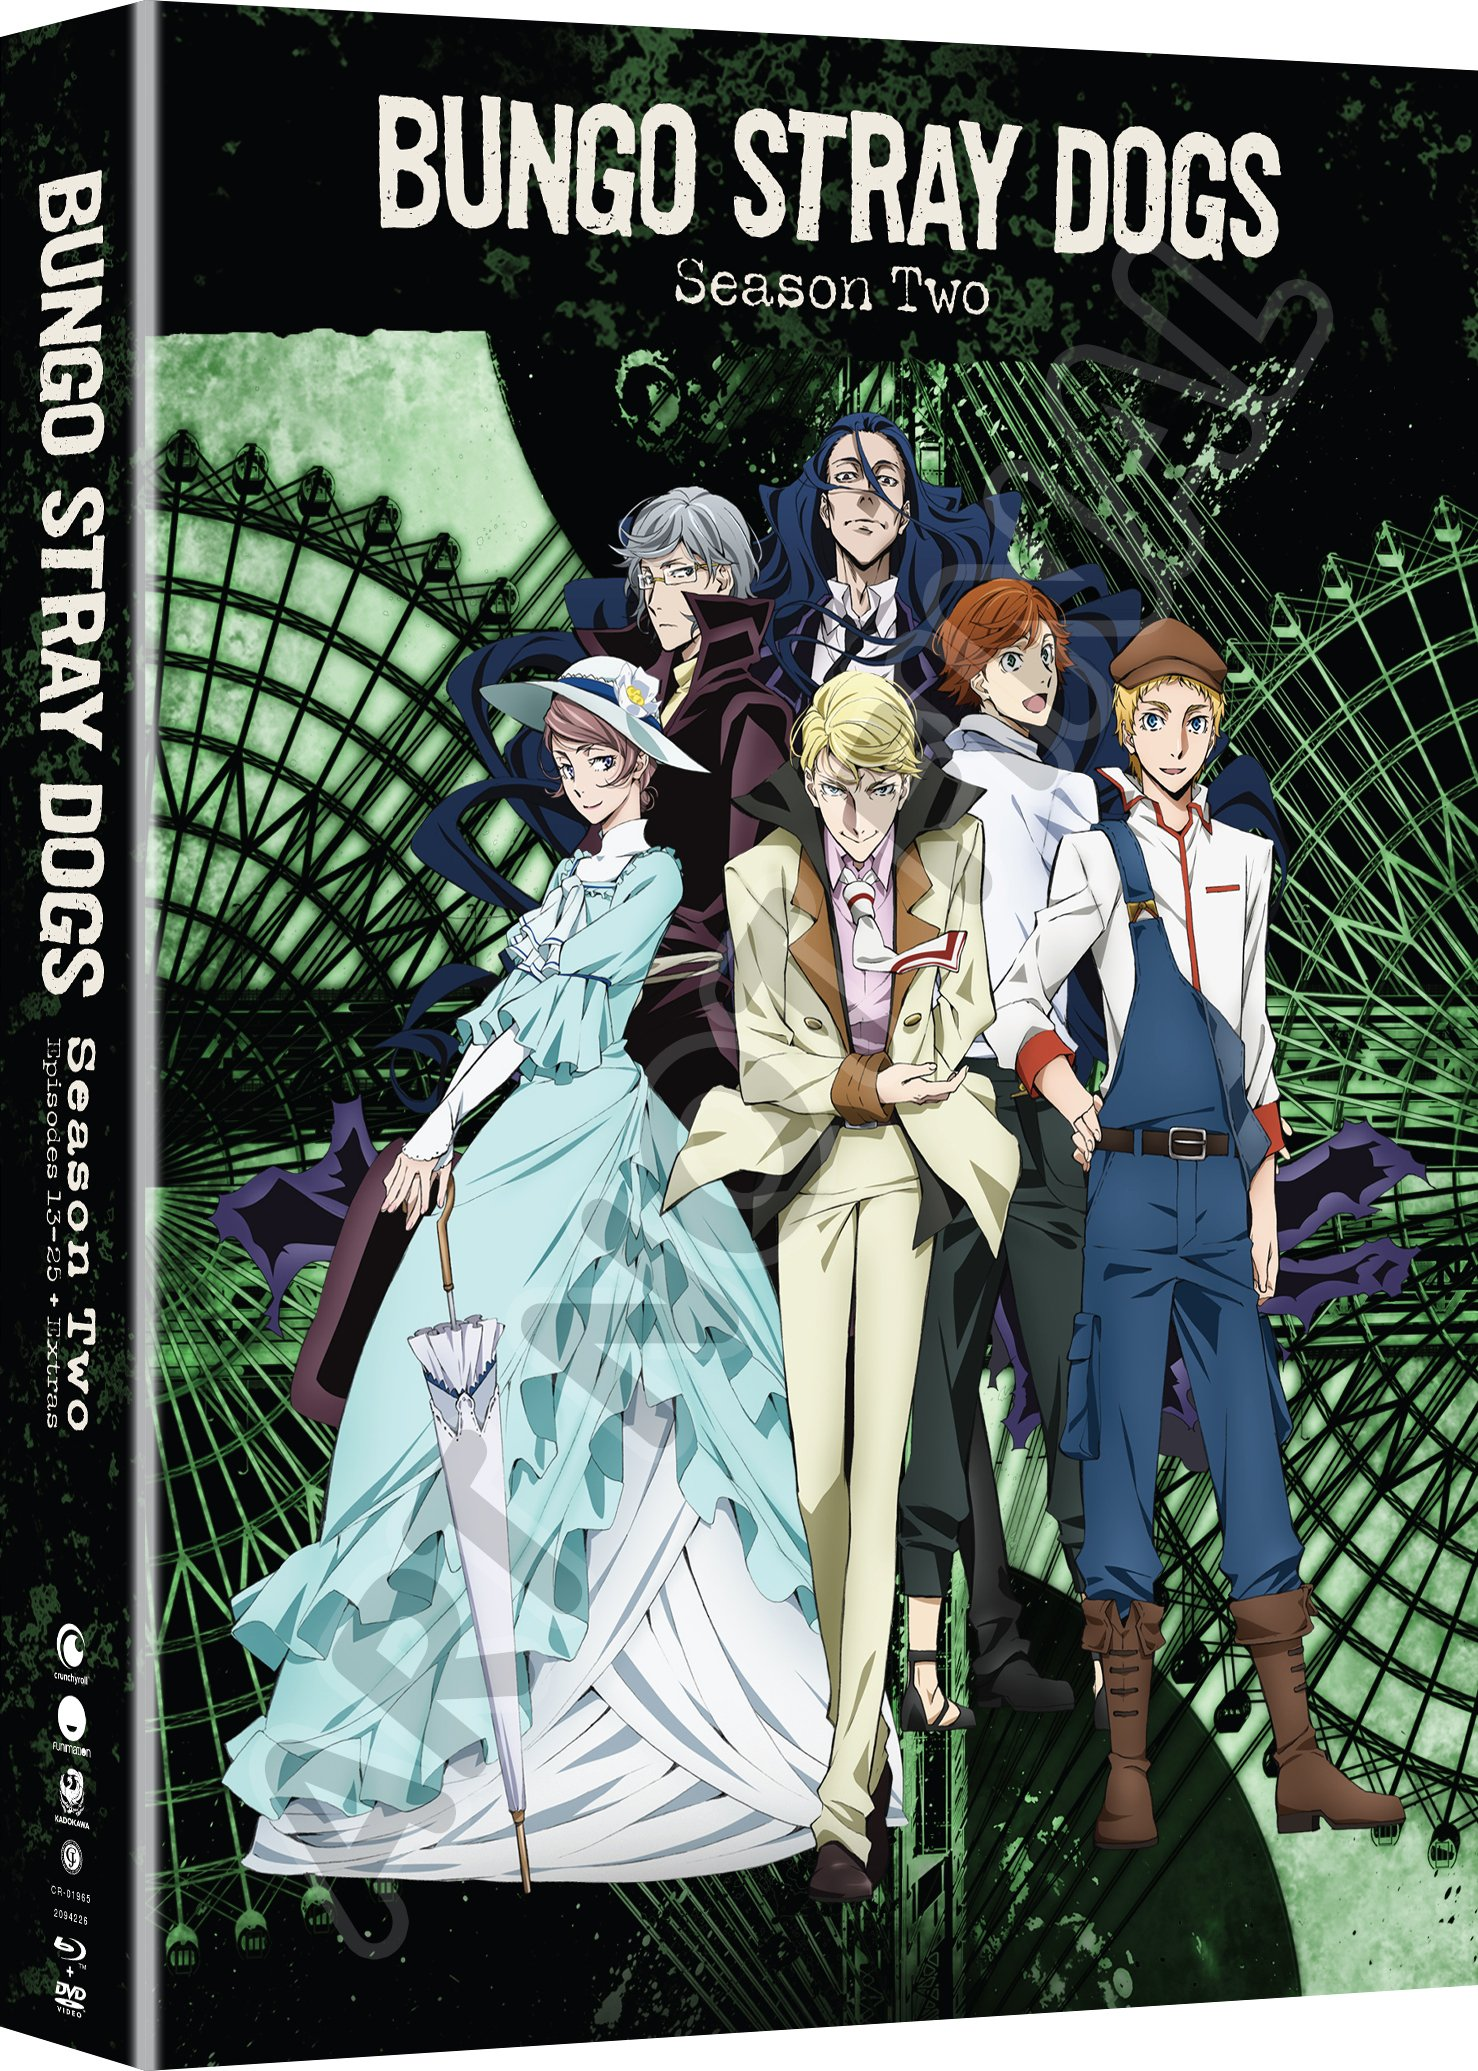 Blu-ray : Bungo Stray Dogs: Season Two (With DVD, Boxed Set, Subtitled, Snap Case, Slipsleeve Packaging)